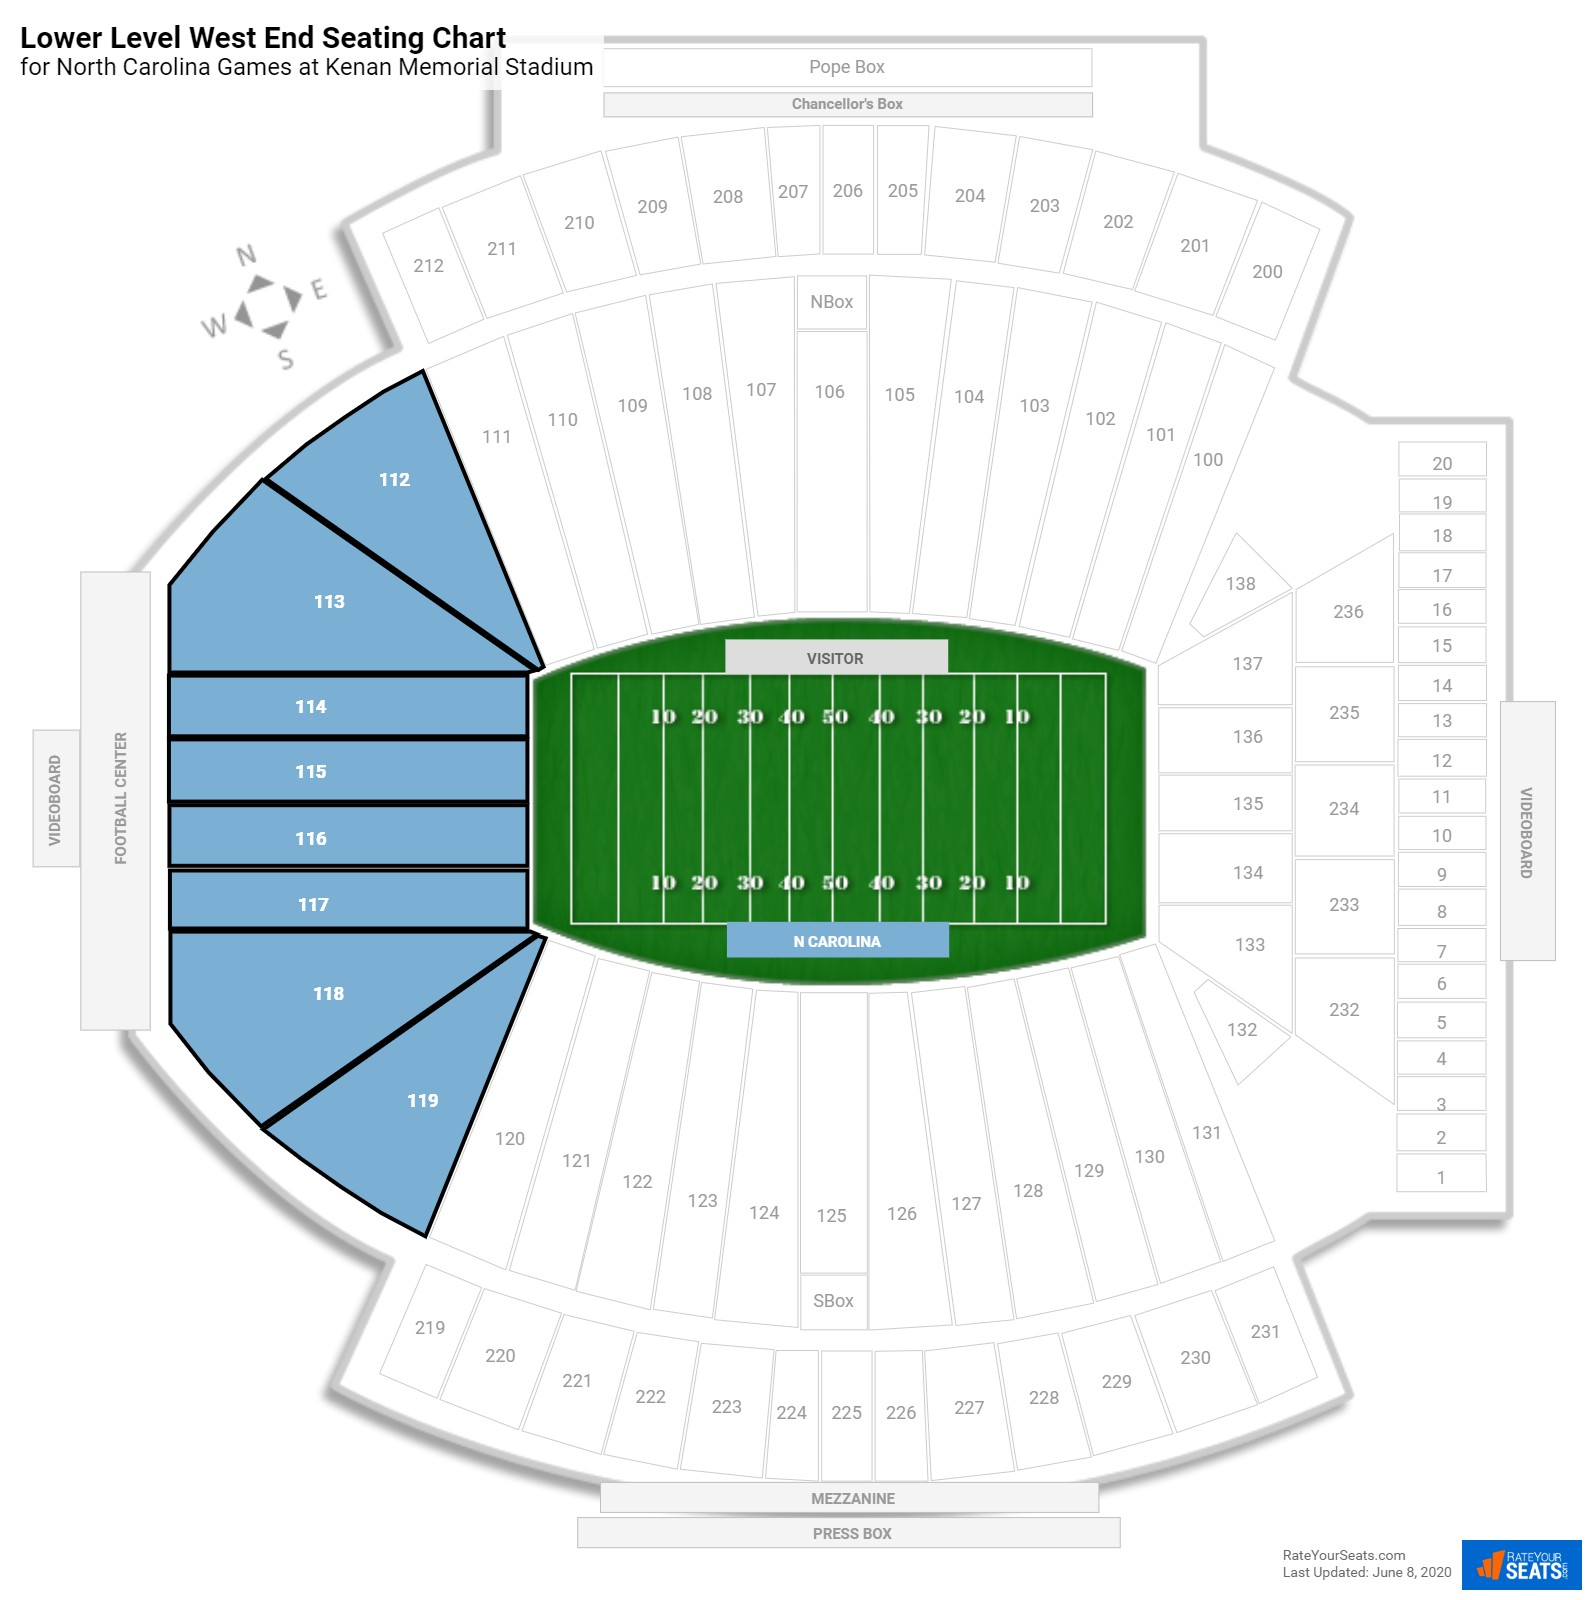 Kenan Memorial Stadium Lower Level West End seating chart